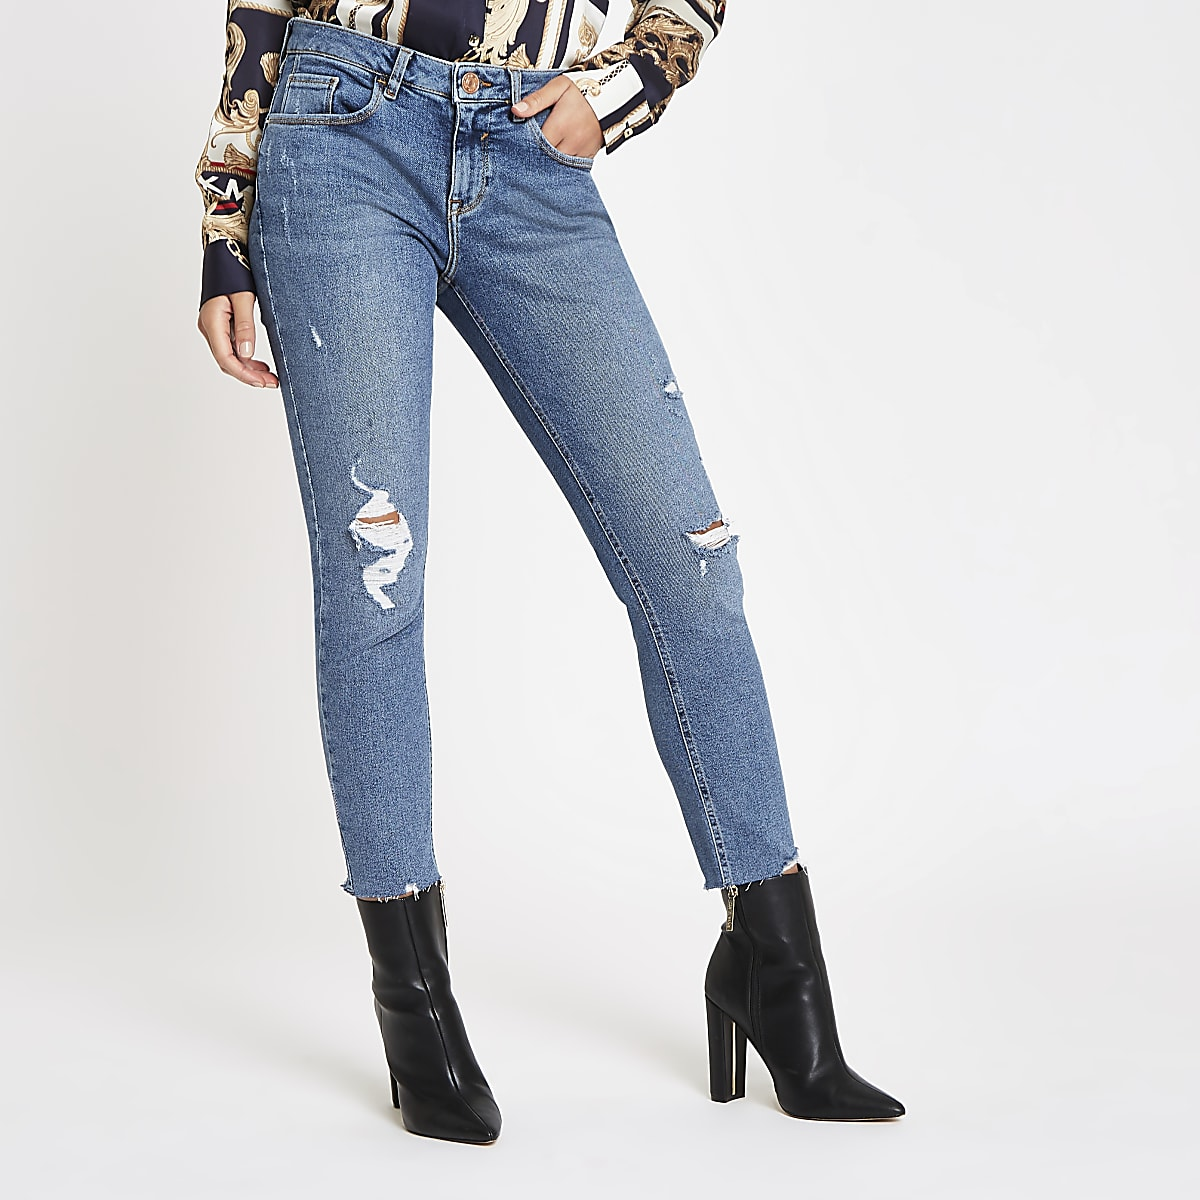 Alannah - Middenblauwe ripped skinny jeans